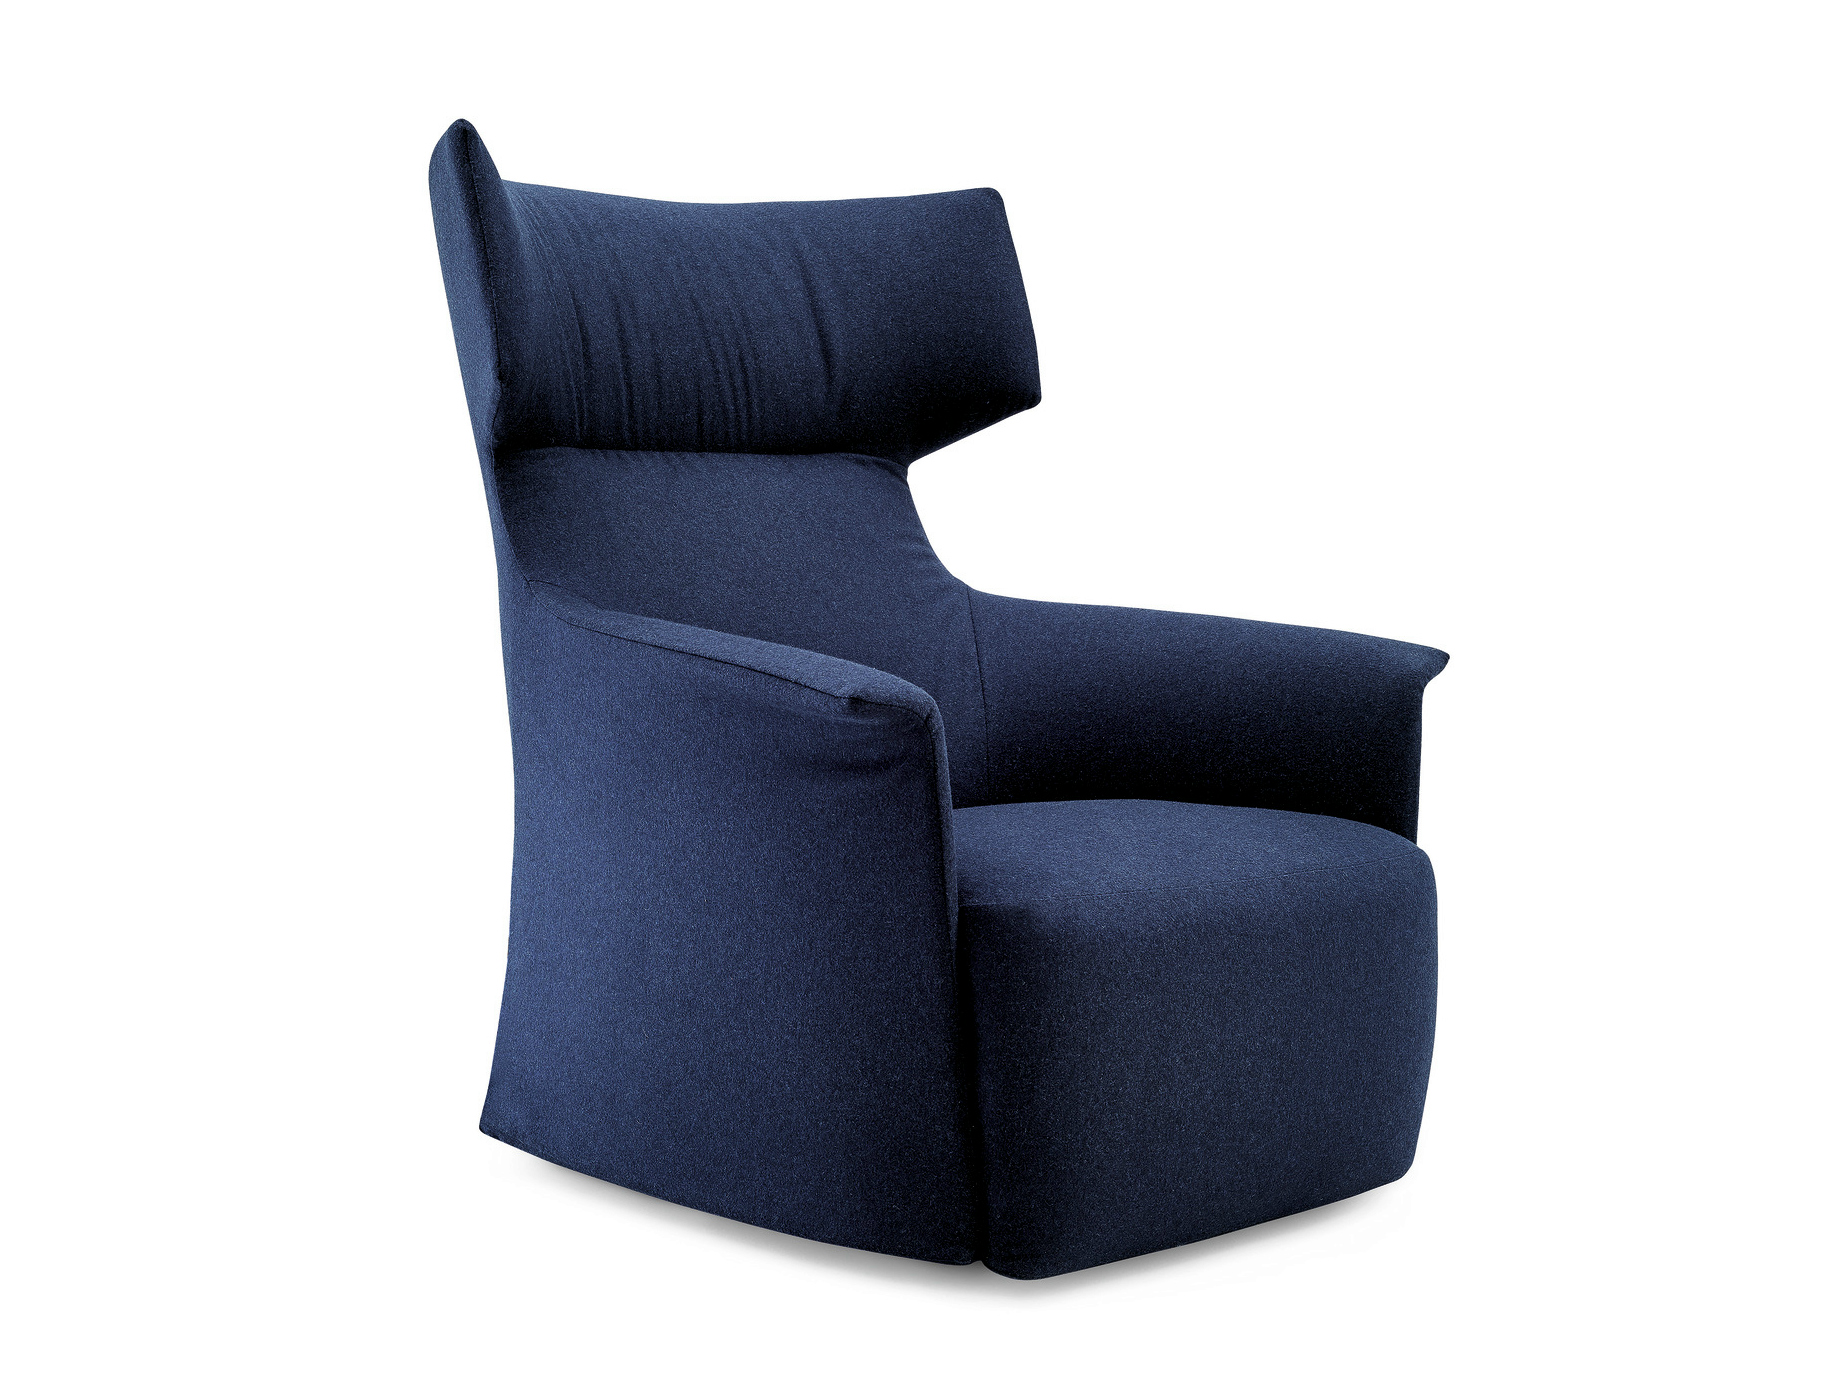 Santa Monica Wingchair by Jean-Marie Massaud for Poliform